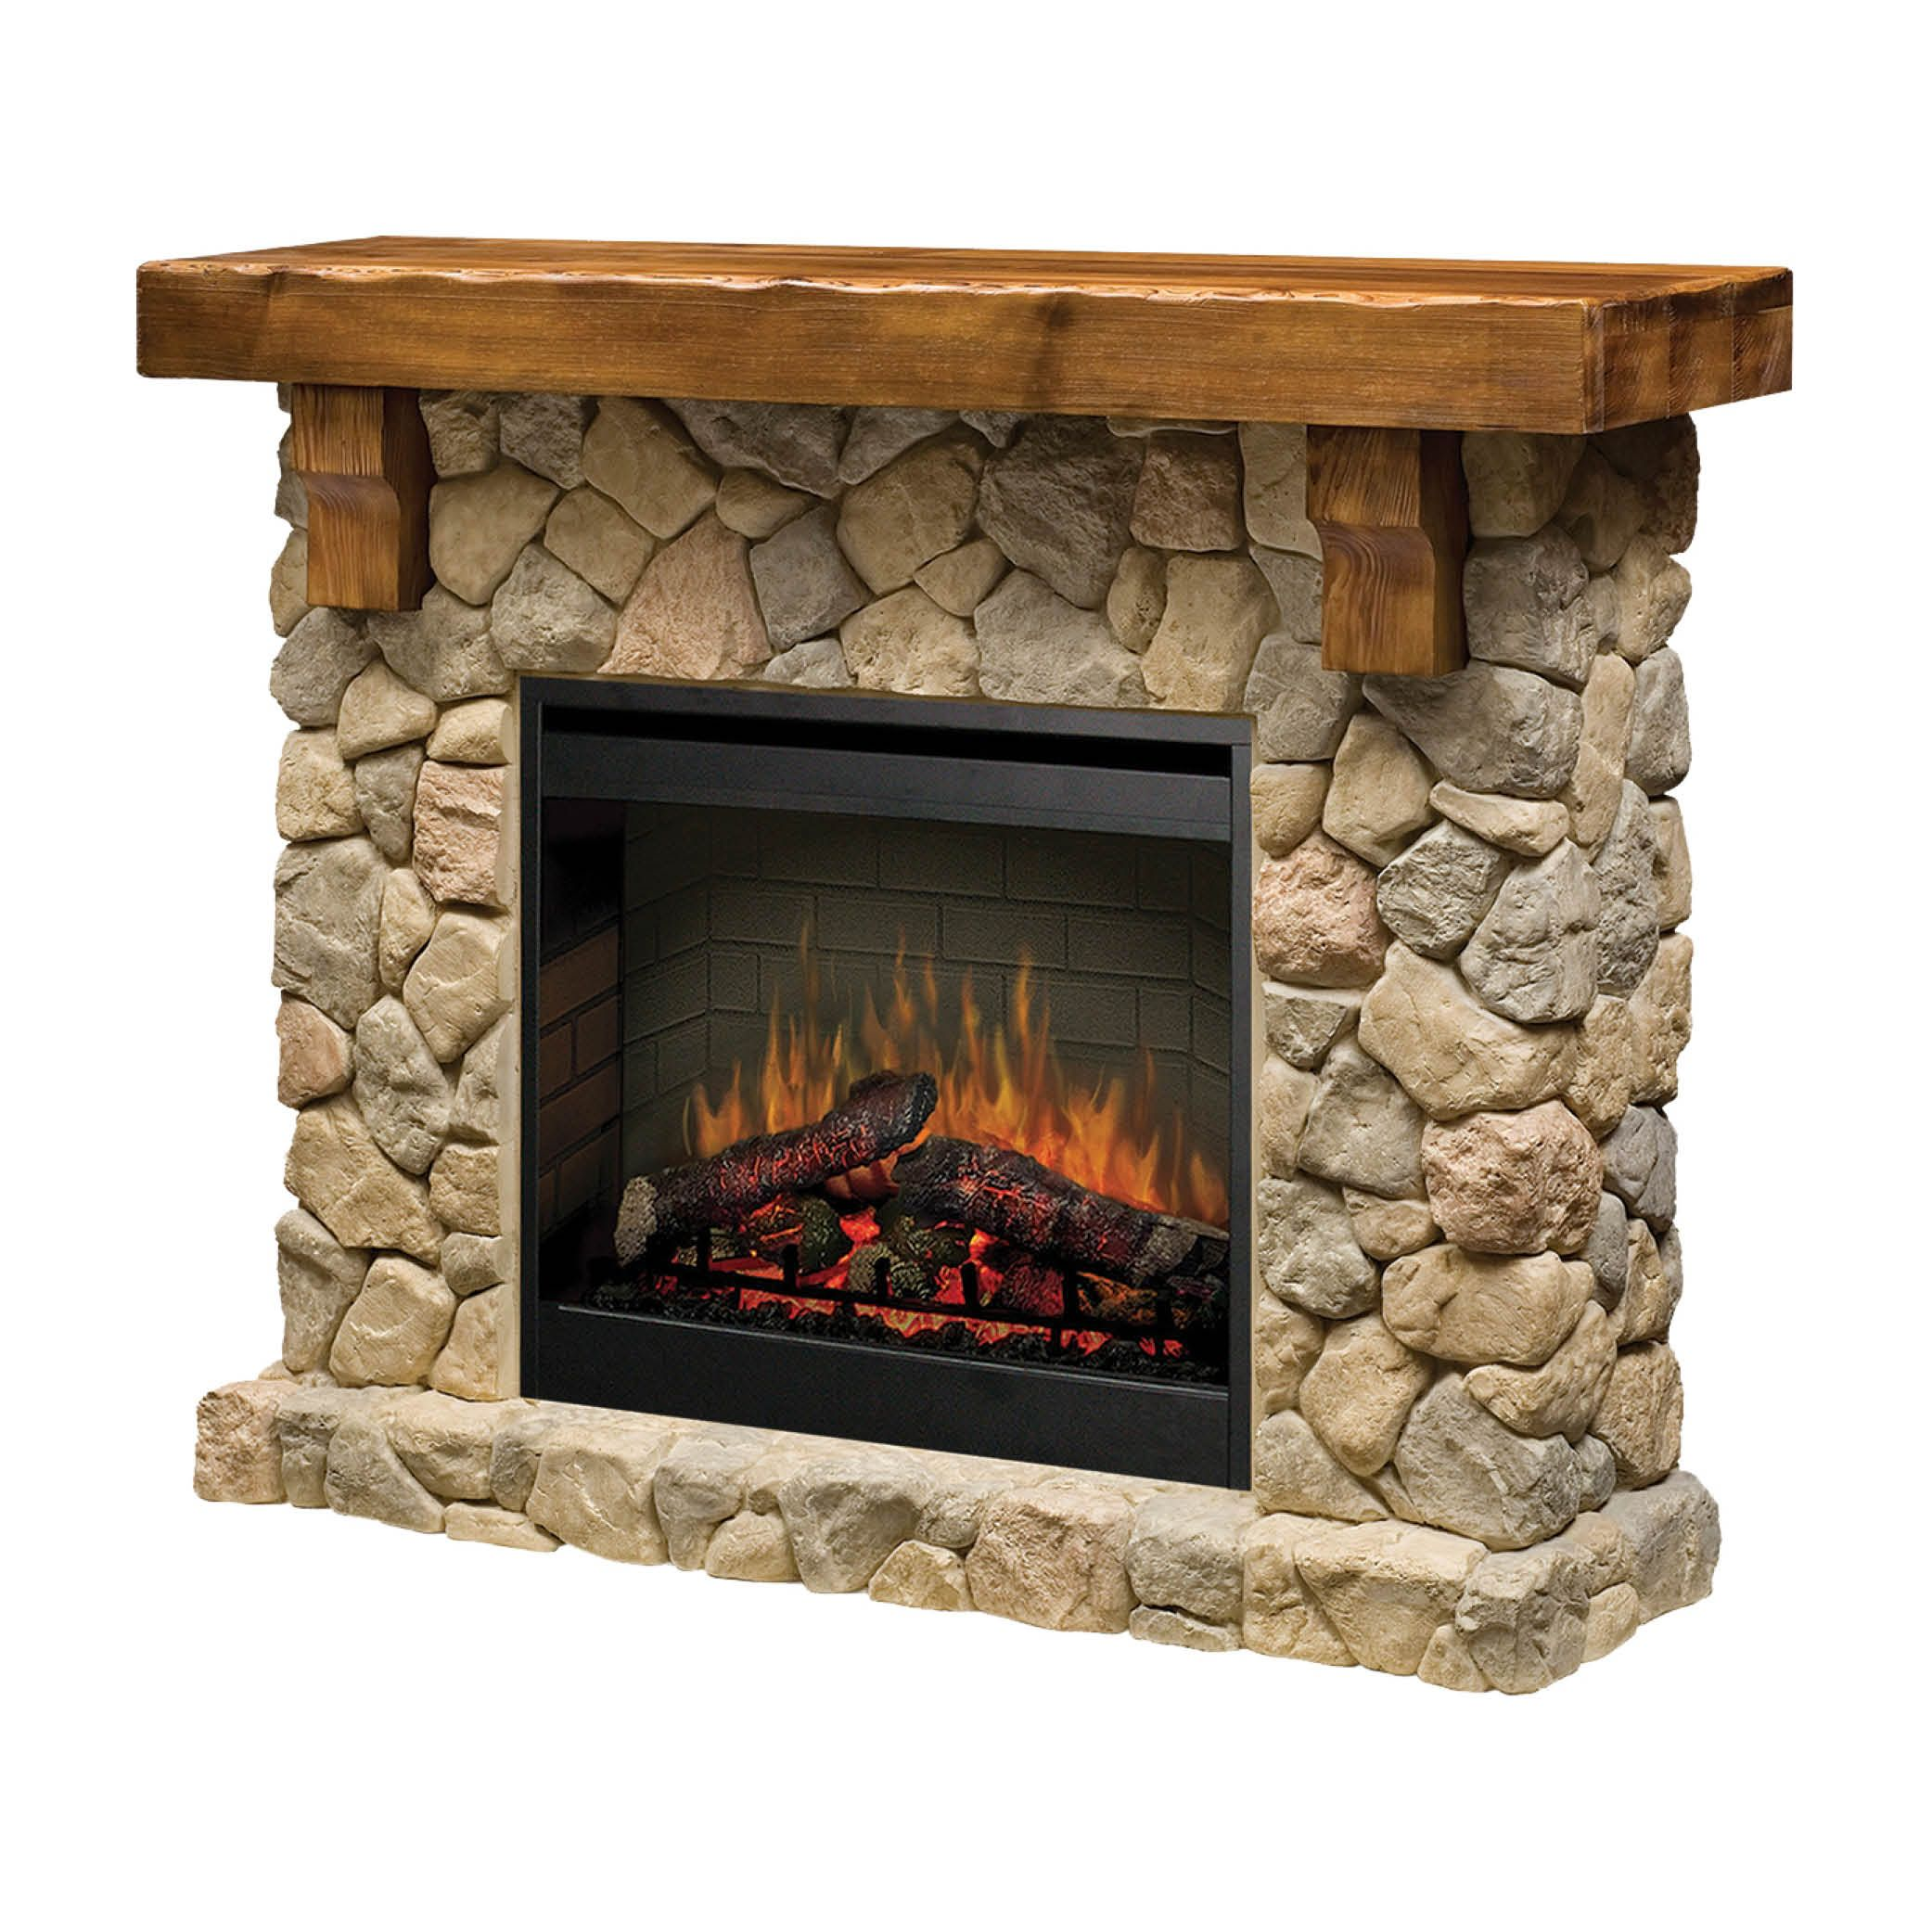 the fieldstone fireplace mantel suite features the patented